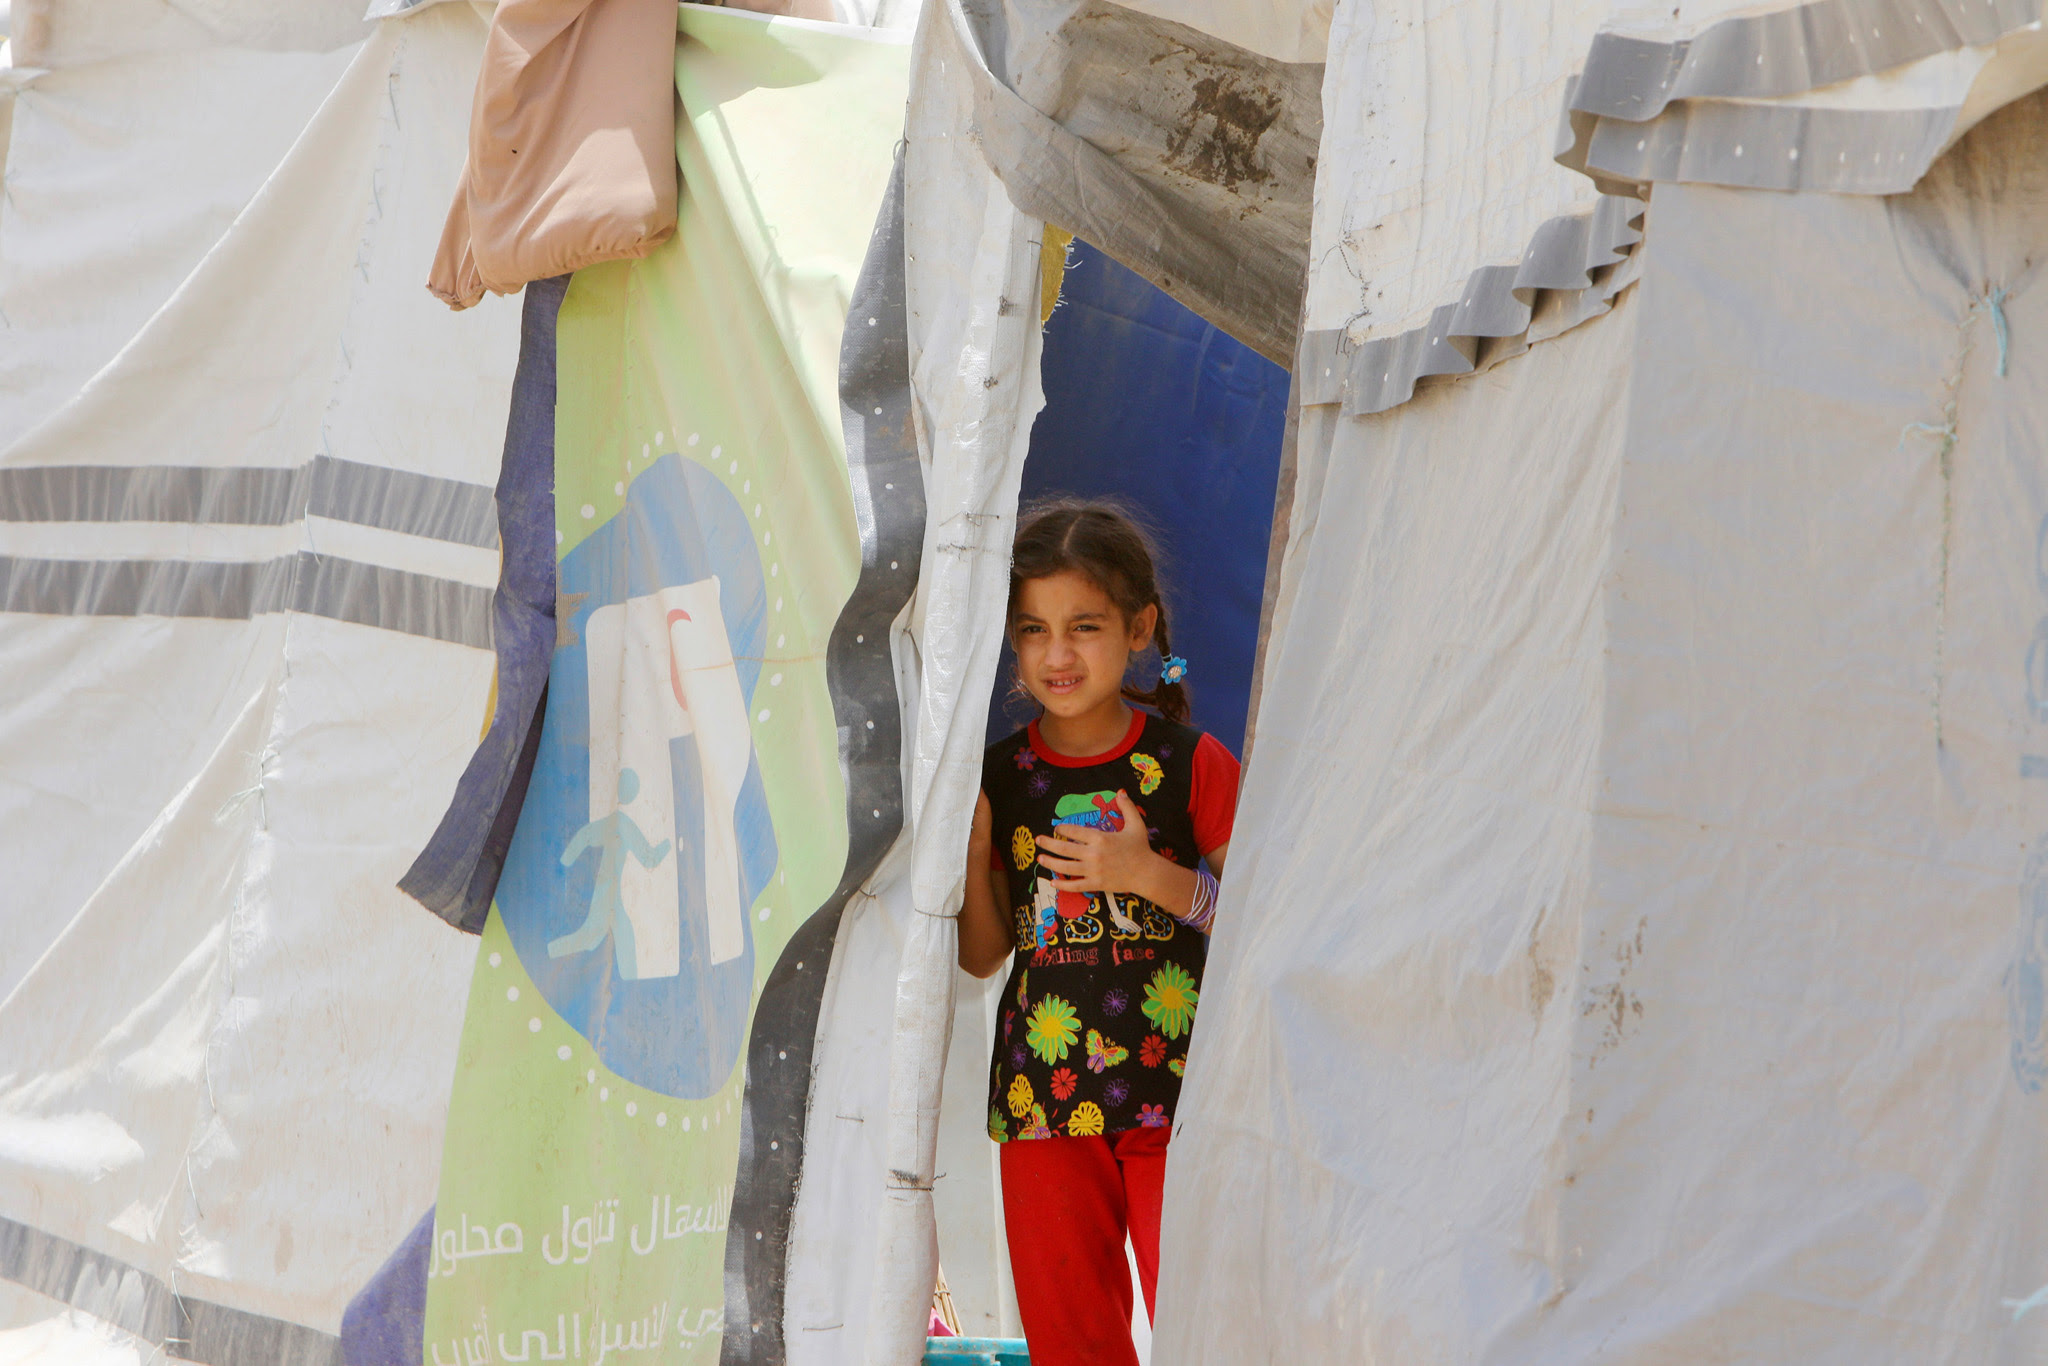 An Iraqi girl who fled from of Islamic State violence, is seen during World Refugee Day celebrations at Al-salam refugee camp in Baghdad, Iraq, June 20, 2016.